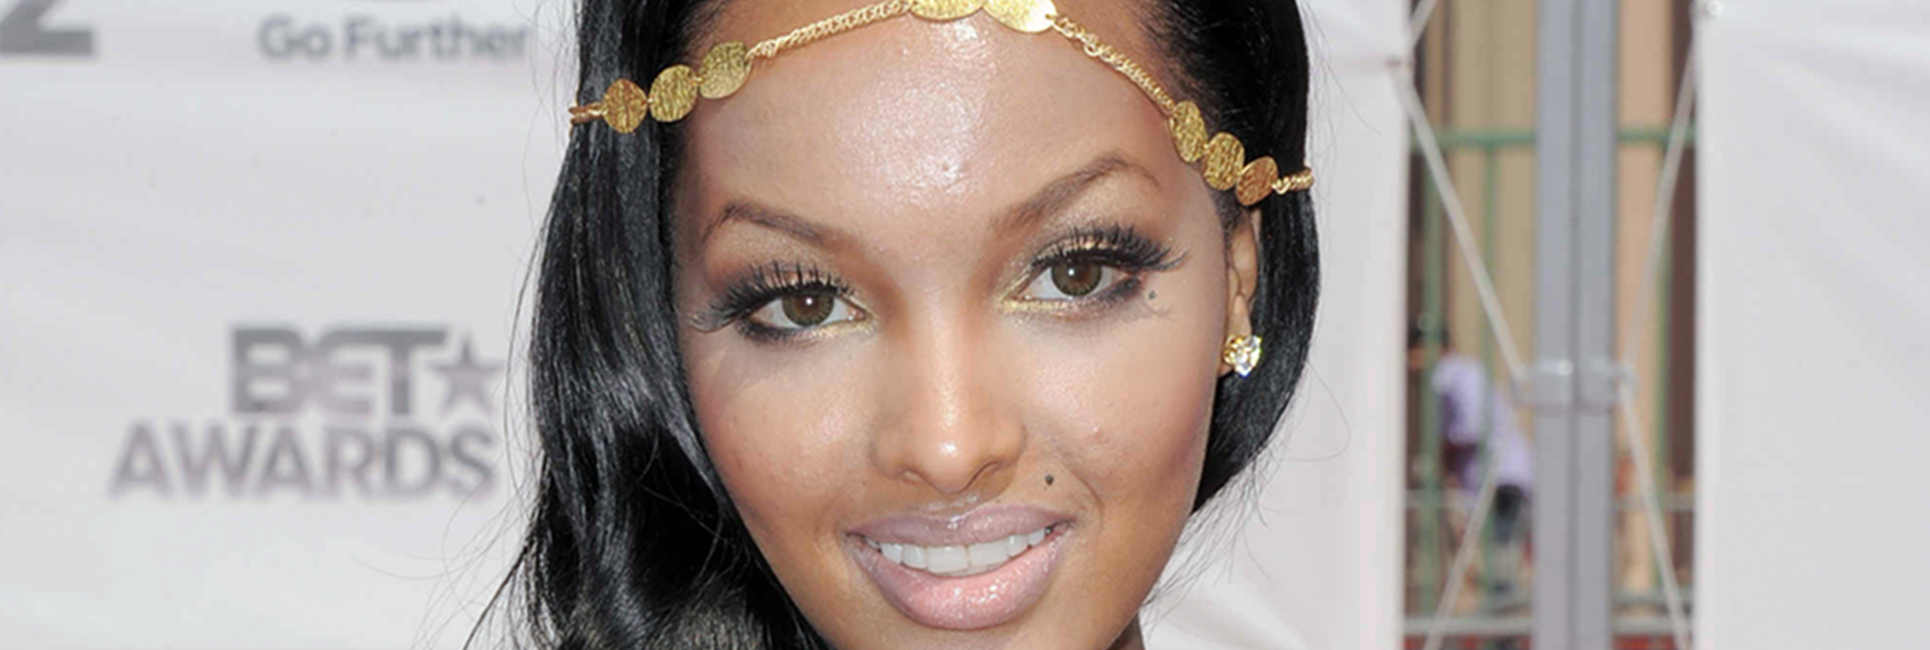 Lola Monroe Hairstyles Galleries related: lola monroe